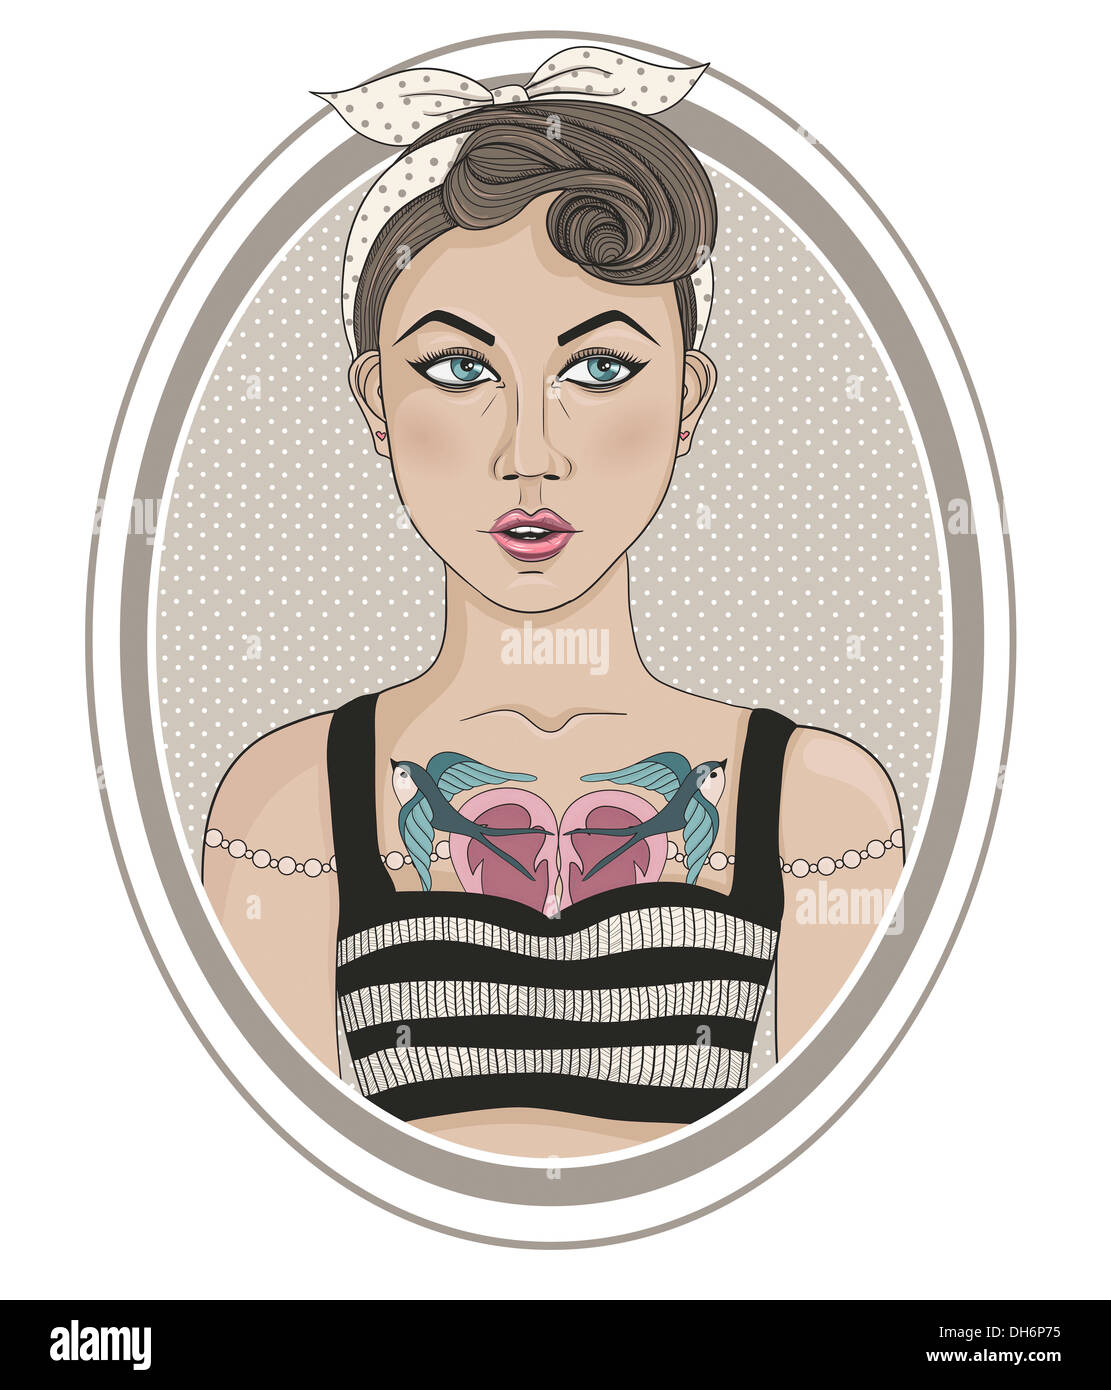 2204510ae4c3e2 Rockabilly Girl Stock Photos & Rockabilly Girl Stock Images - Alamy